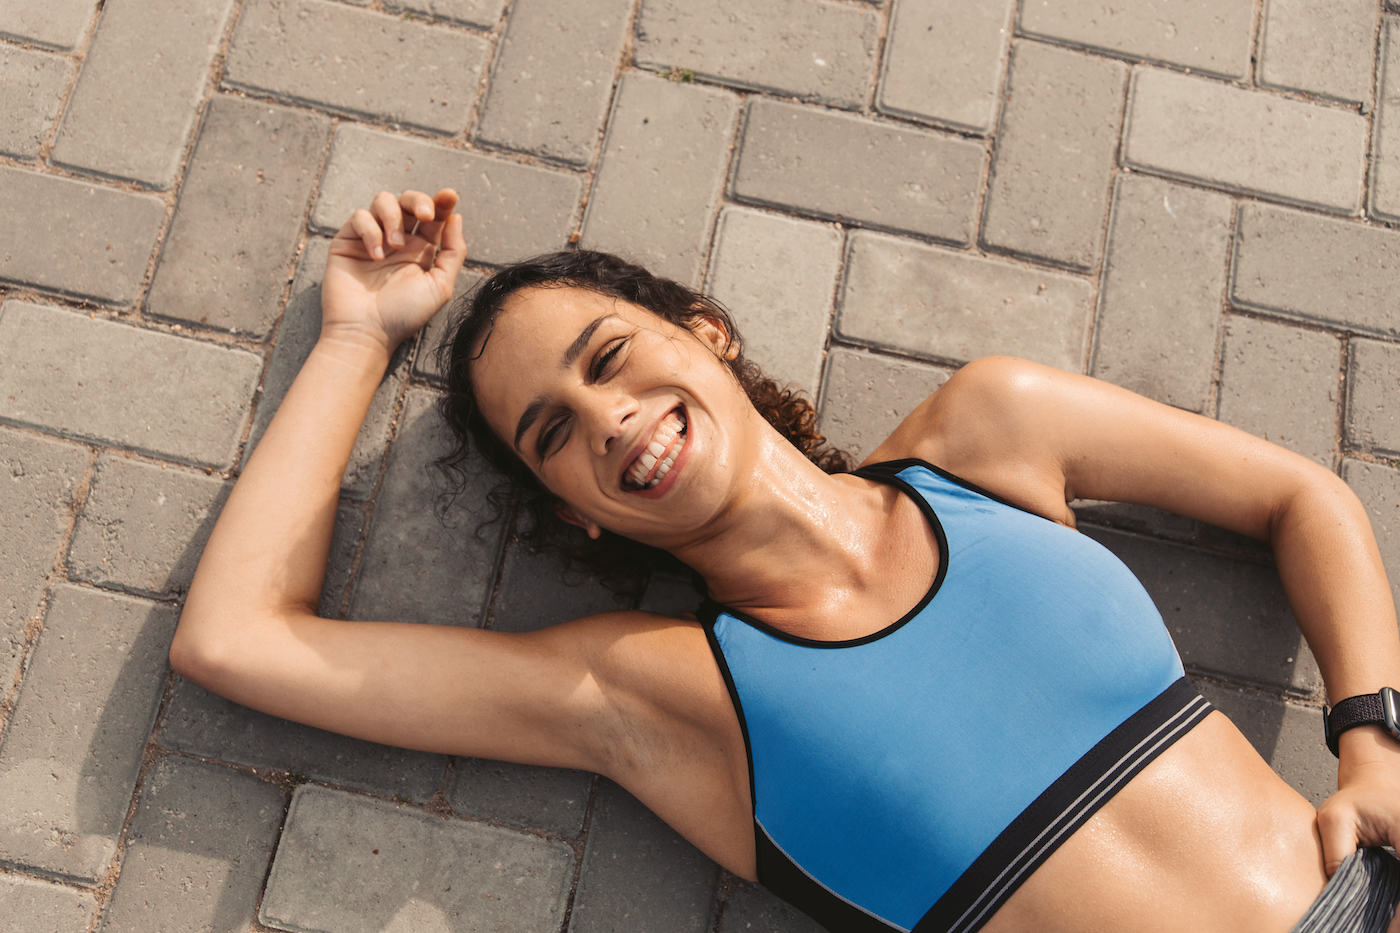 Thumbnail for 'Core Kegels' Are the Best Way to Strengthen Your Abs Between Workouts